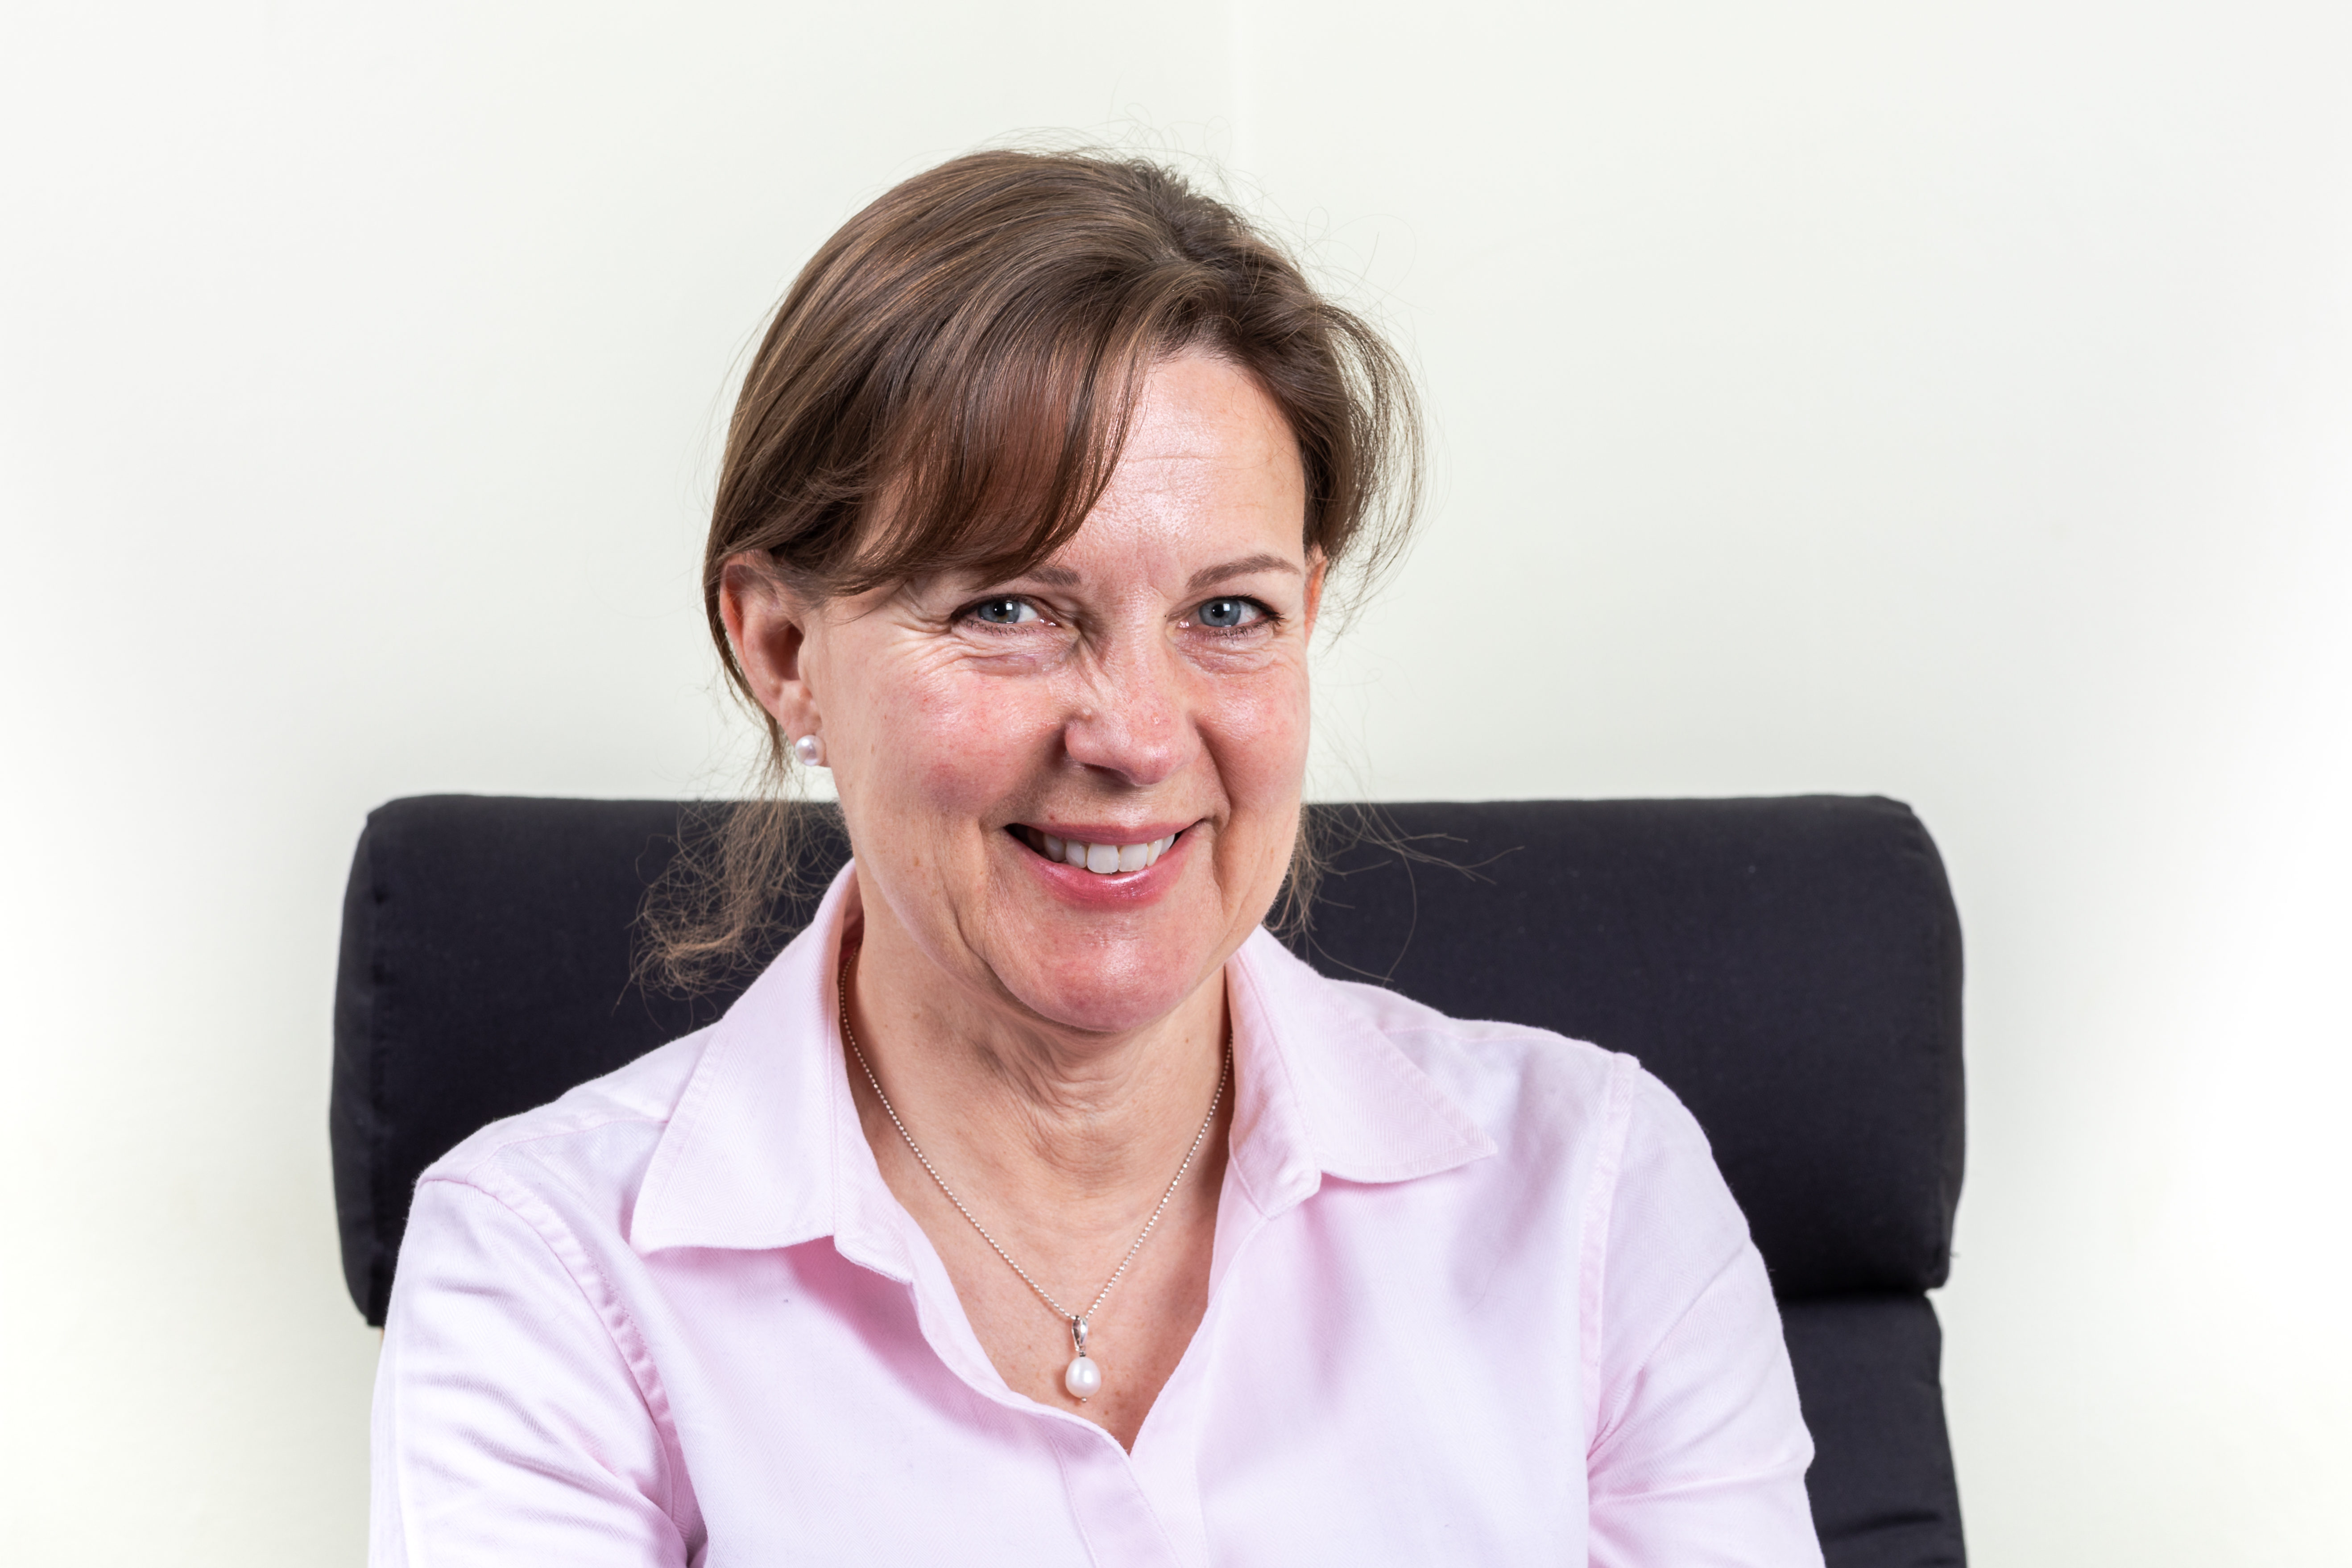 Dr Joanna Pope at the Southern Independent Medical Practice